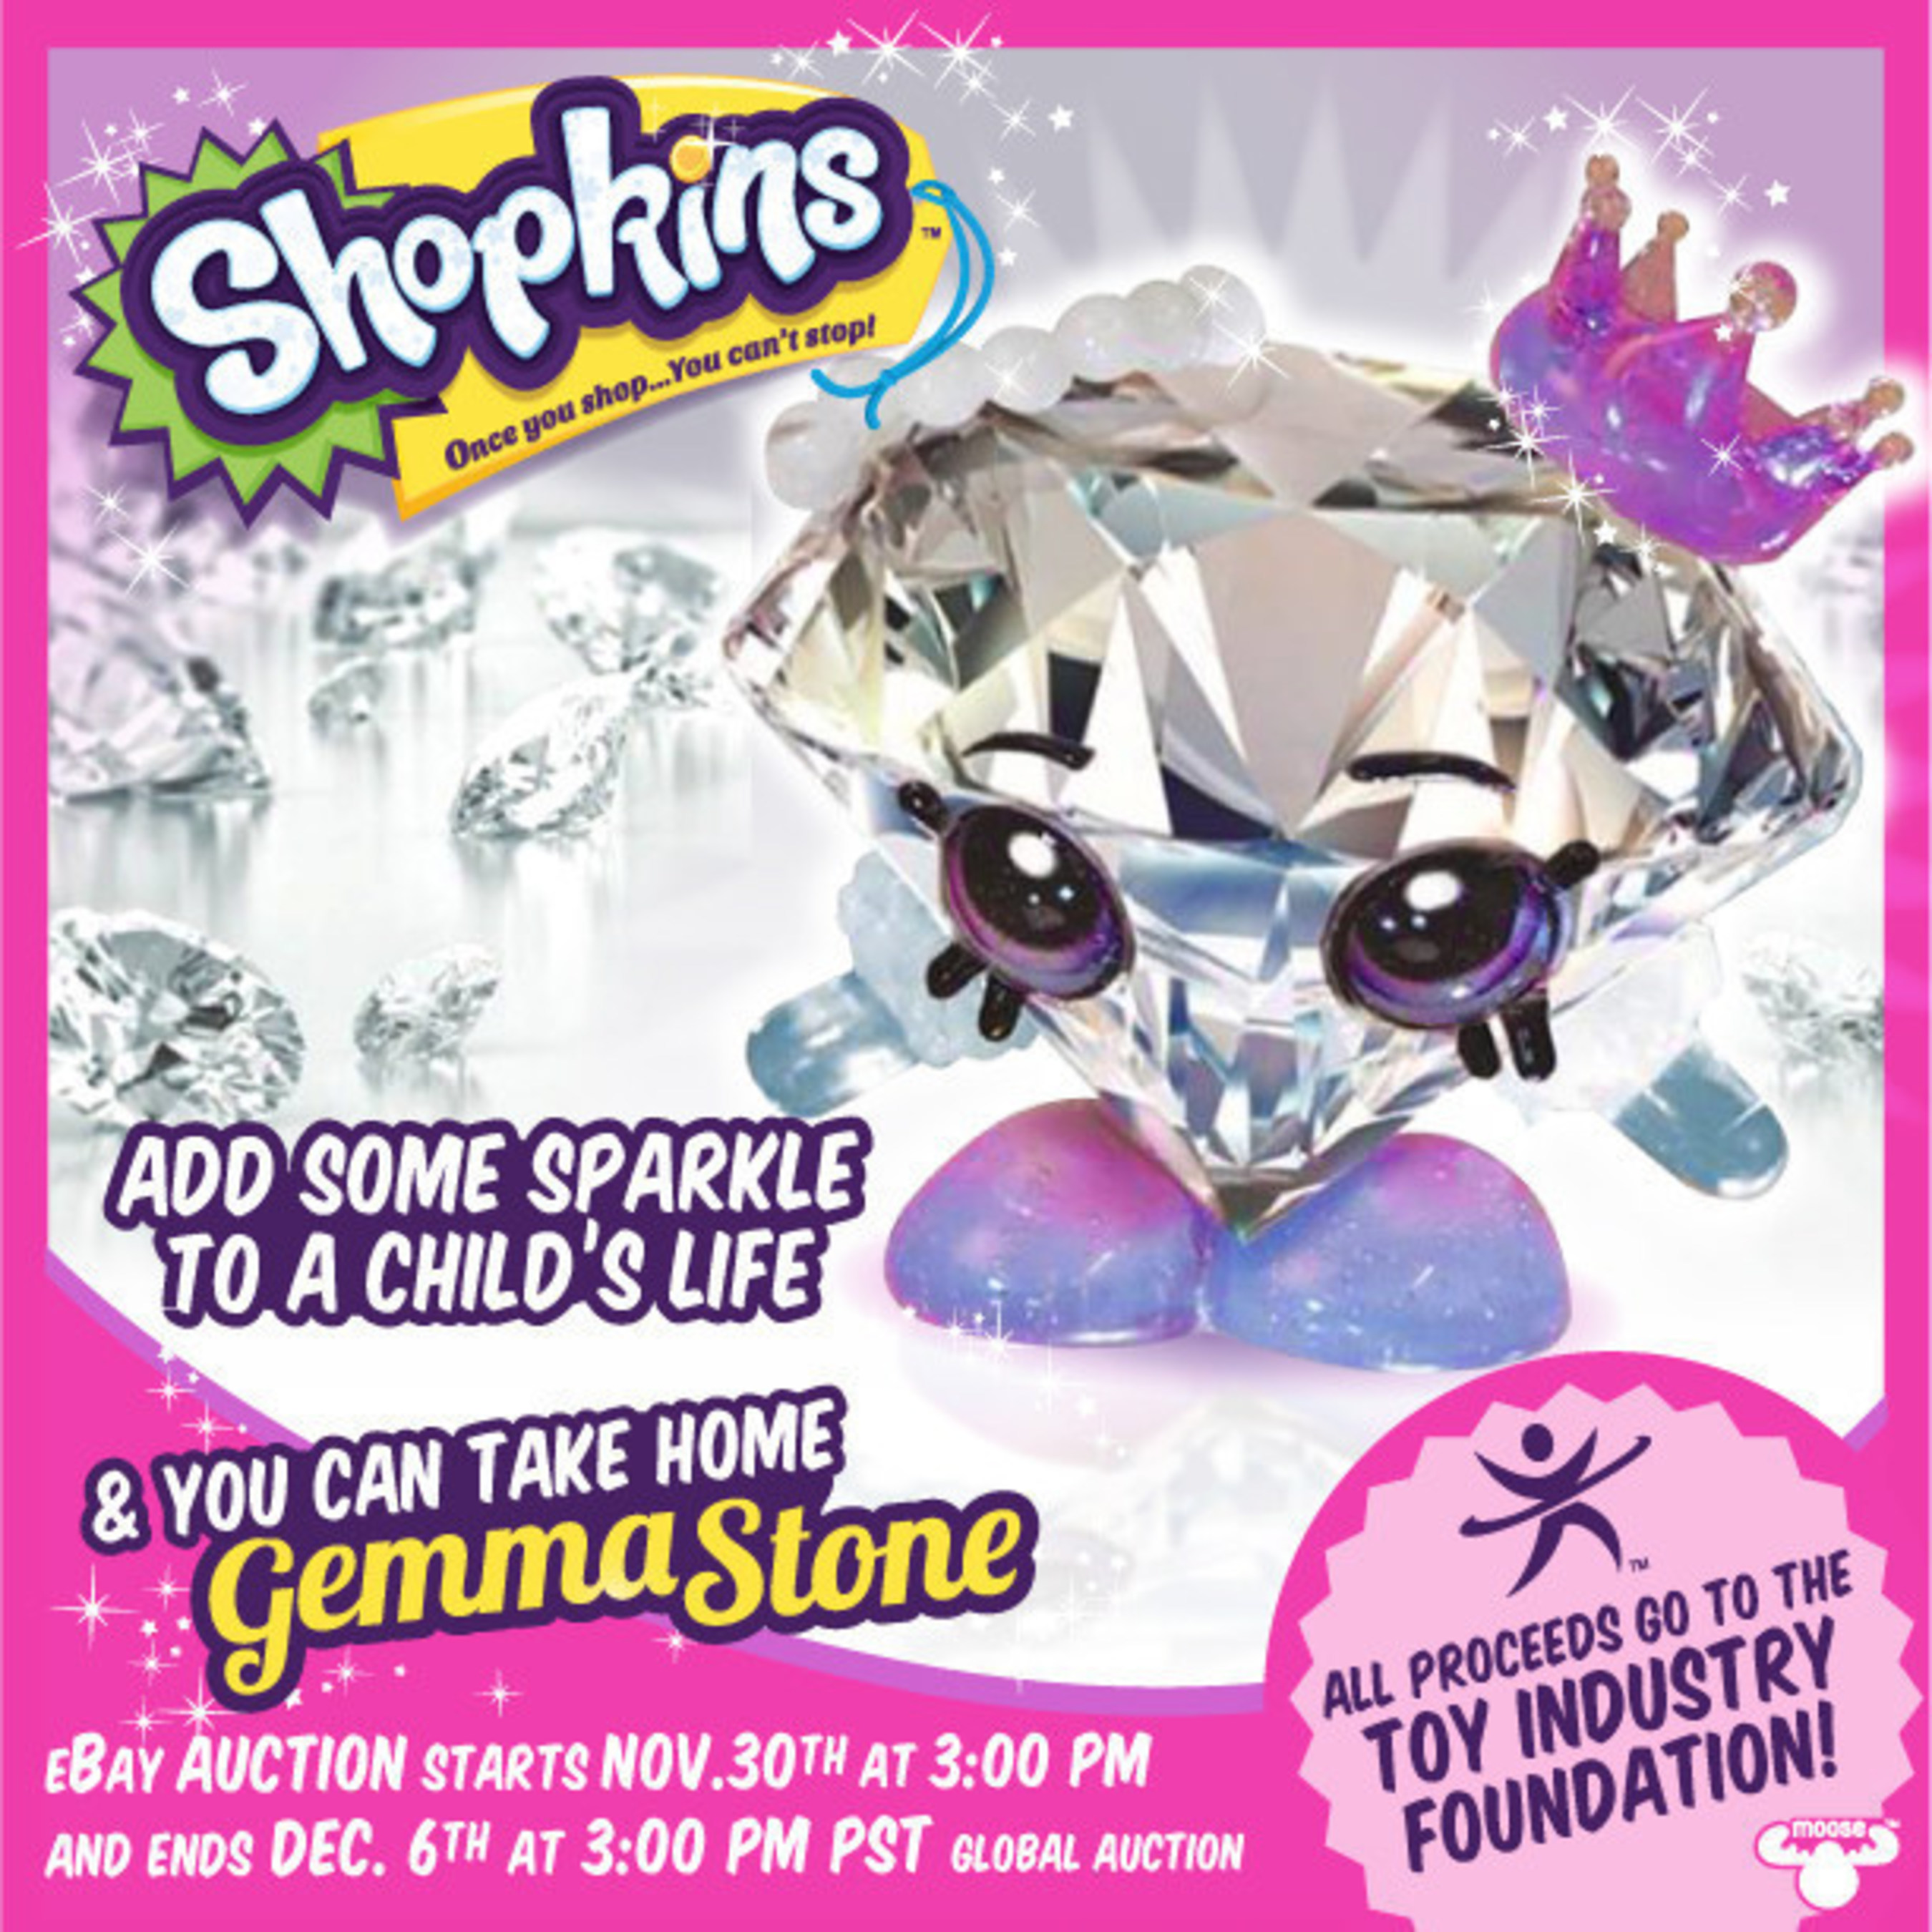 Moose Toys Will Auction Off Shopkins™ Gemma Stone To Benefit The Toy Industry Foundation